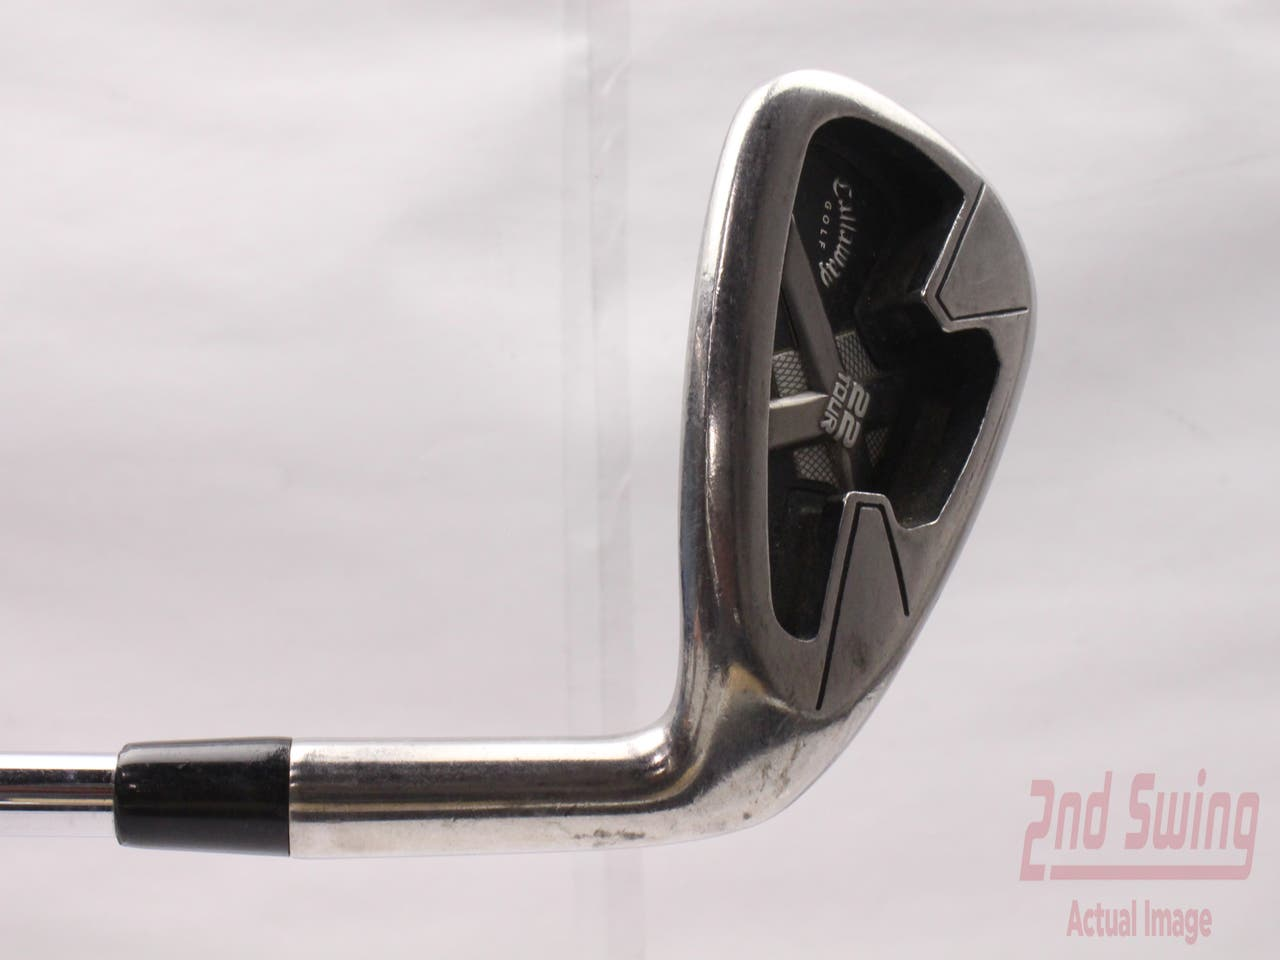 Callaway X-22 Tour Single Iron 8 Iron Project X Flighted 5.5 Steel Stiff Right Handed 37 in